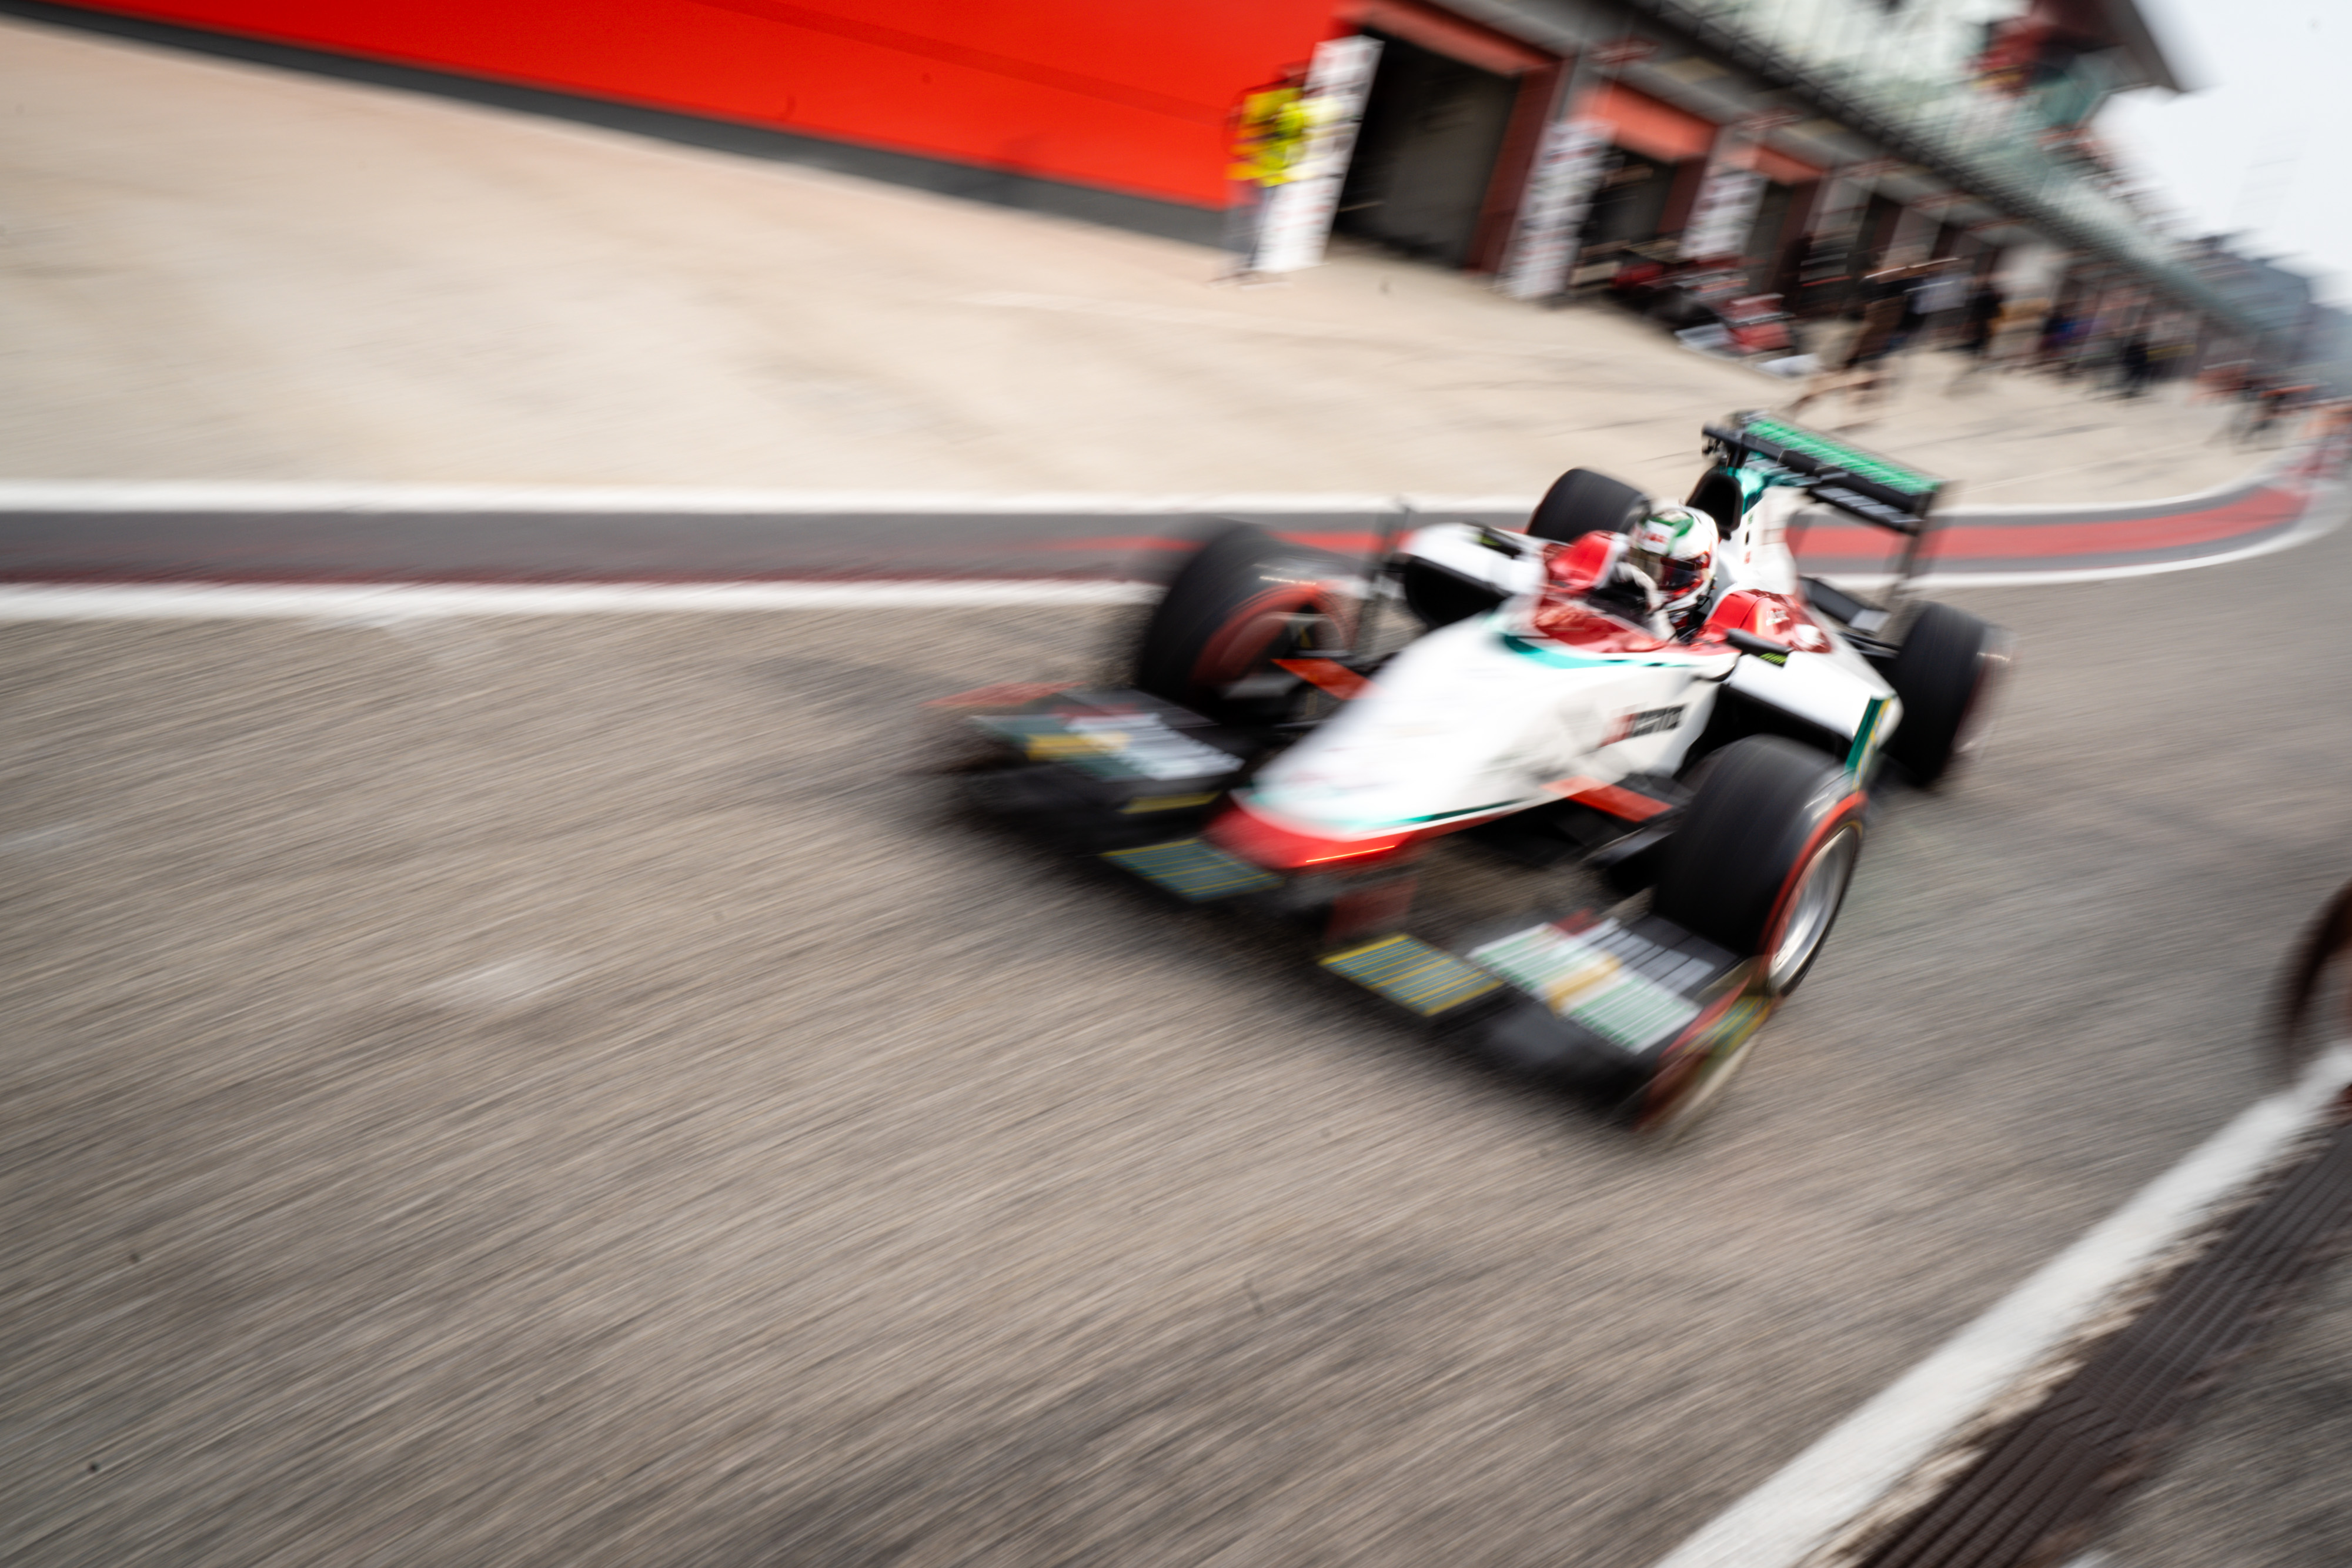 Luca Martucci in his GP2 drives down the pit lane